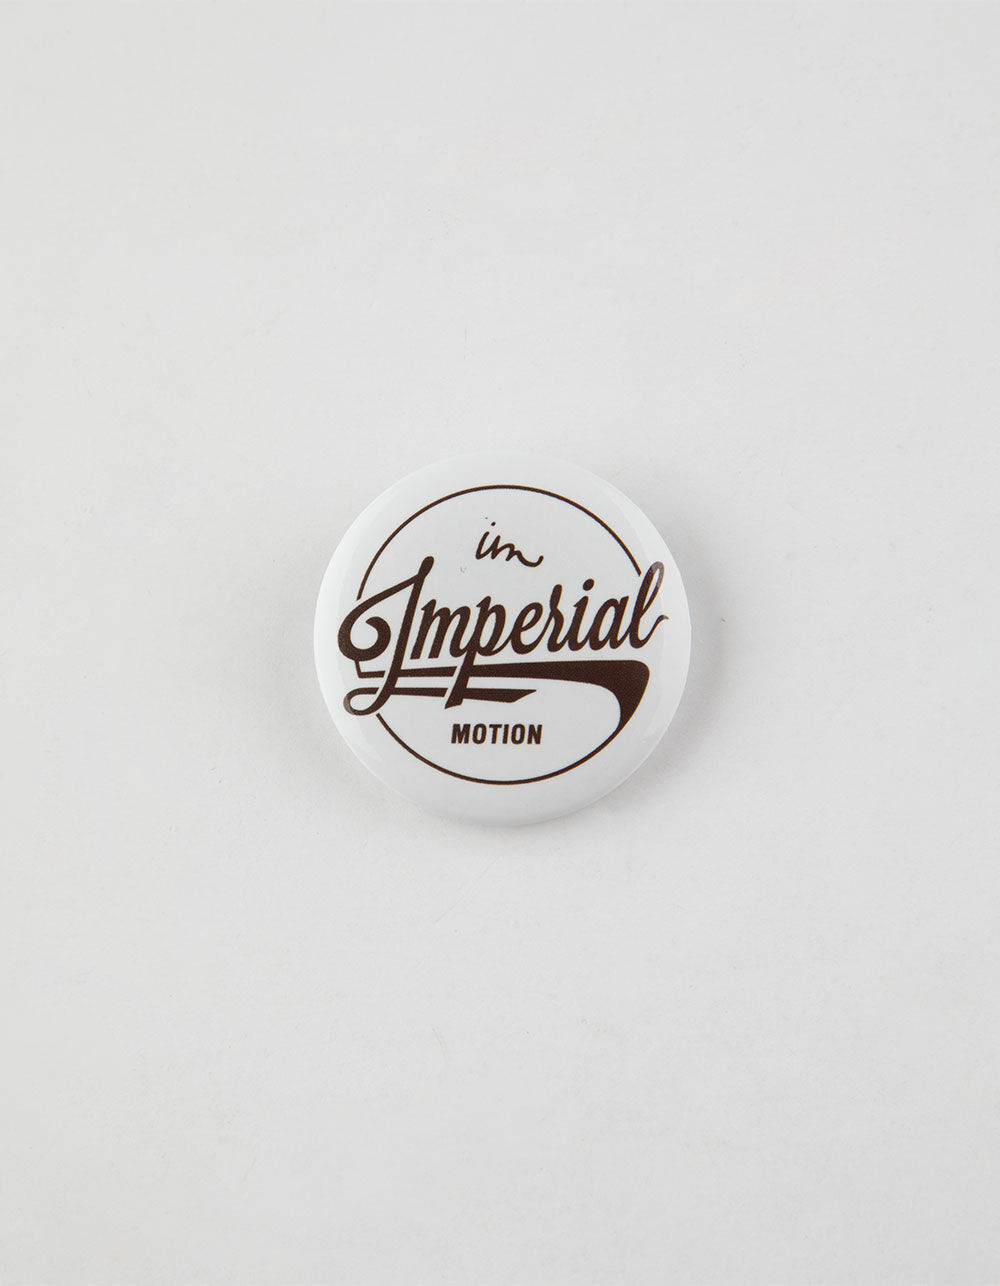 IMPERIAL MOTION Calistoga Pin